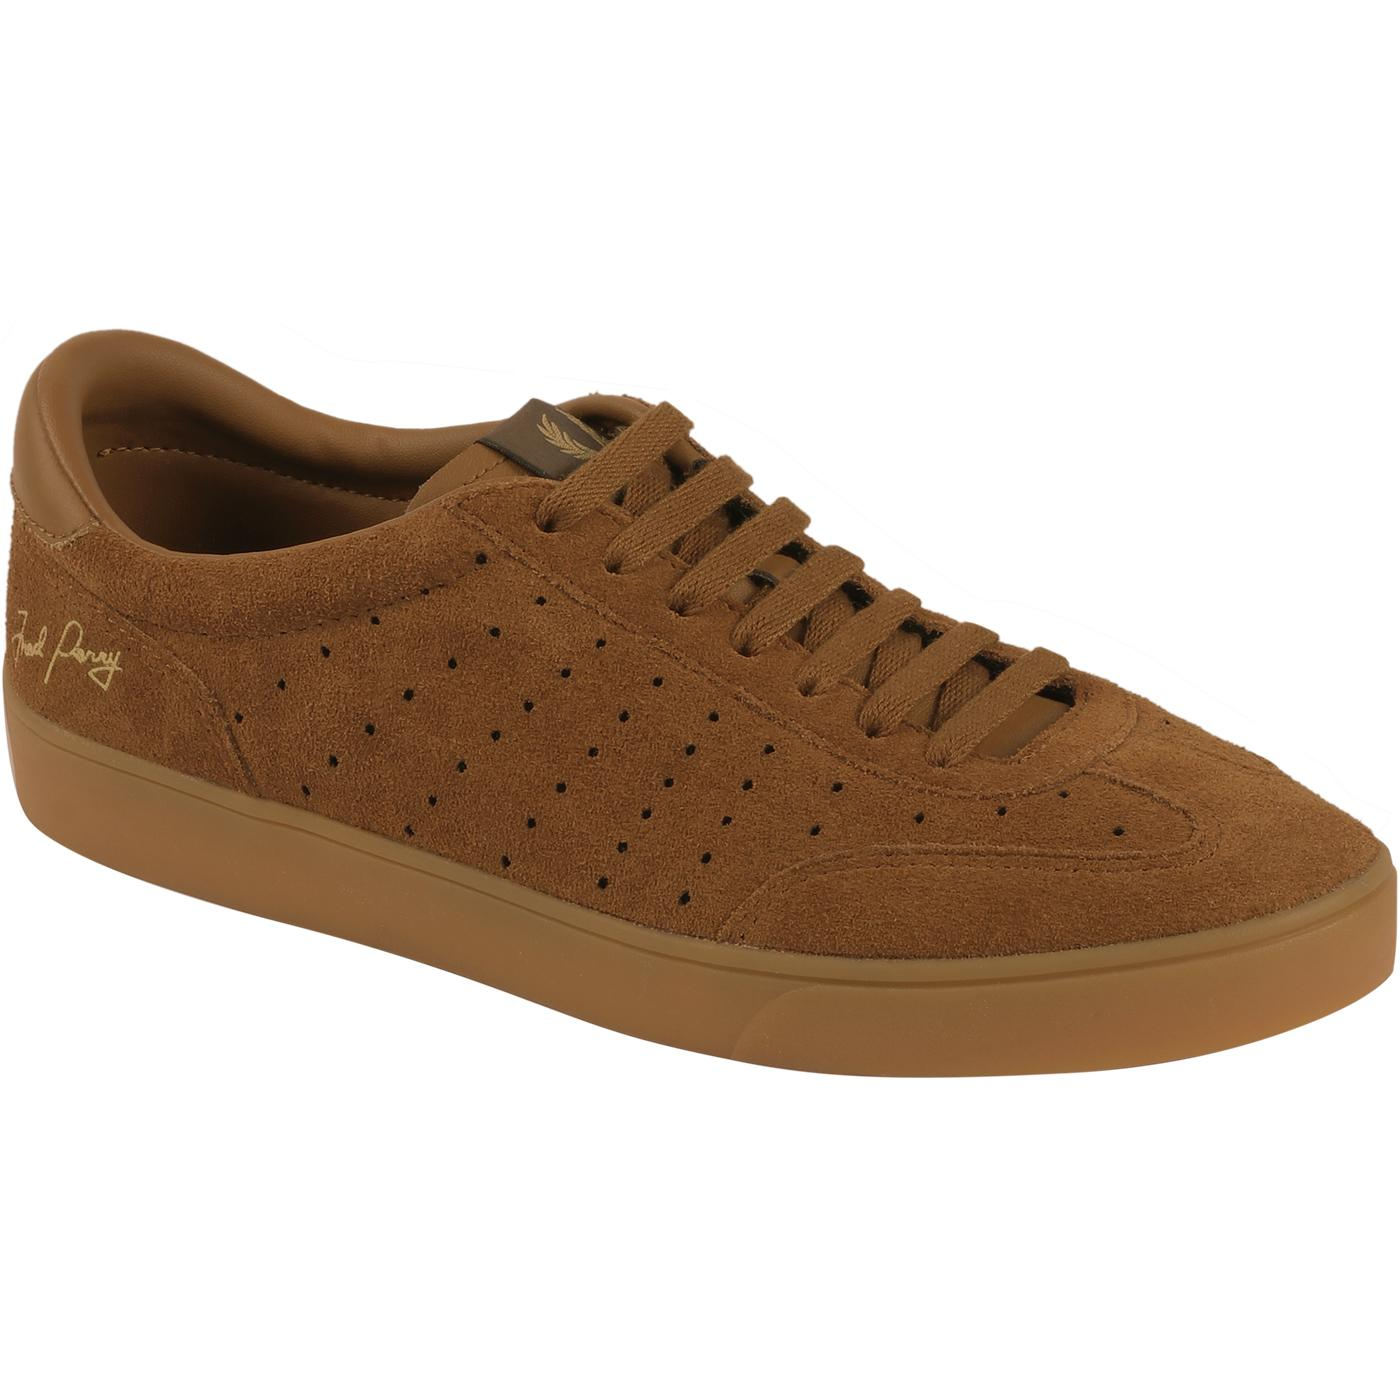 Umpire FRED PERRY Retro Suede Trainers in Ginger